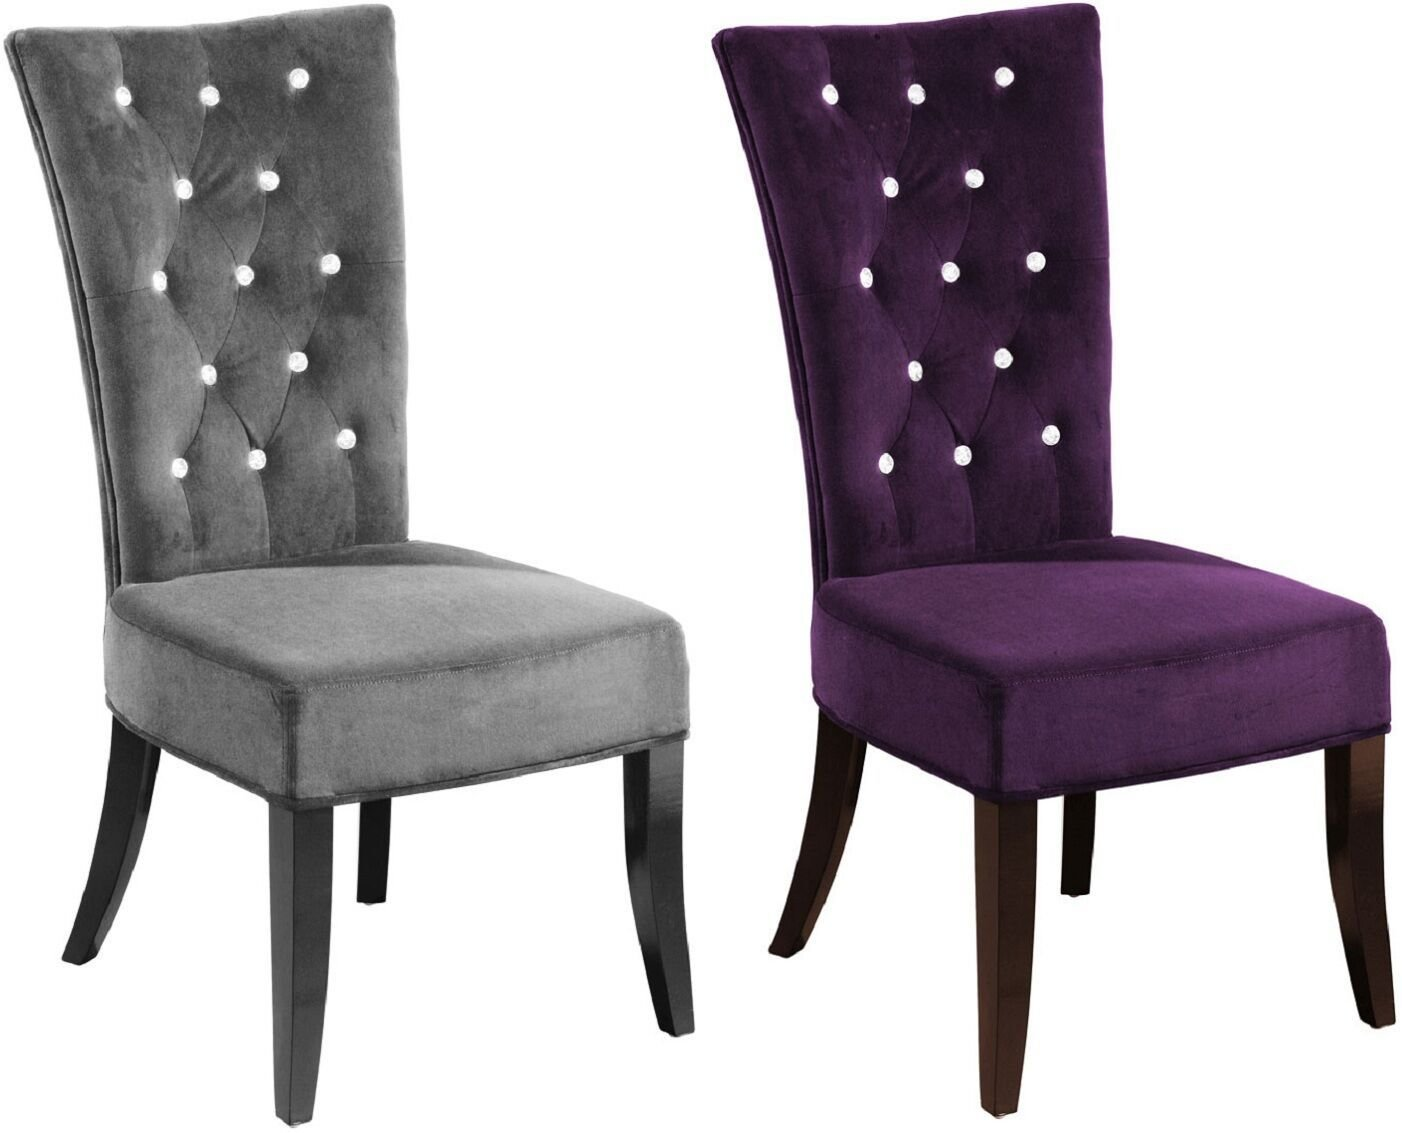 Best New 2 X Charcoal Velvet Grey Radiance Bedroom Dining Chair With Pictures